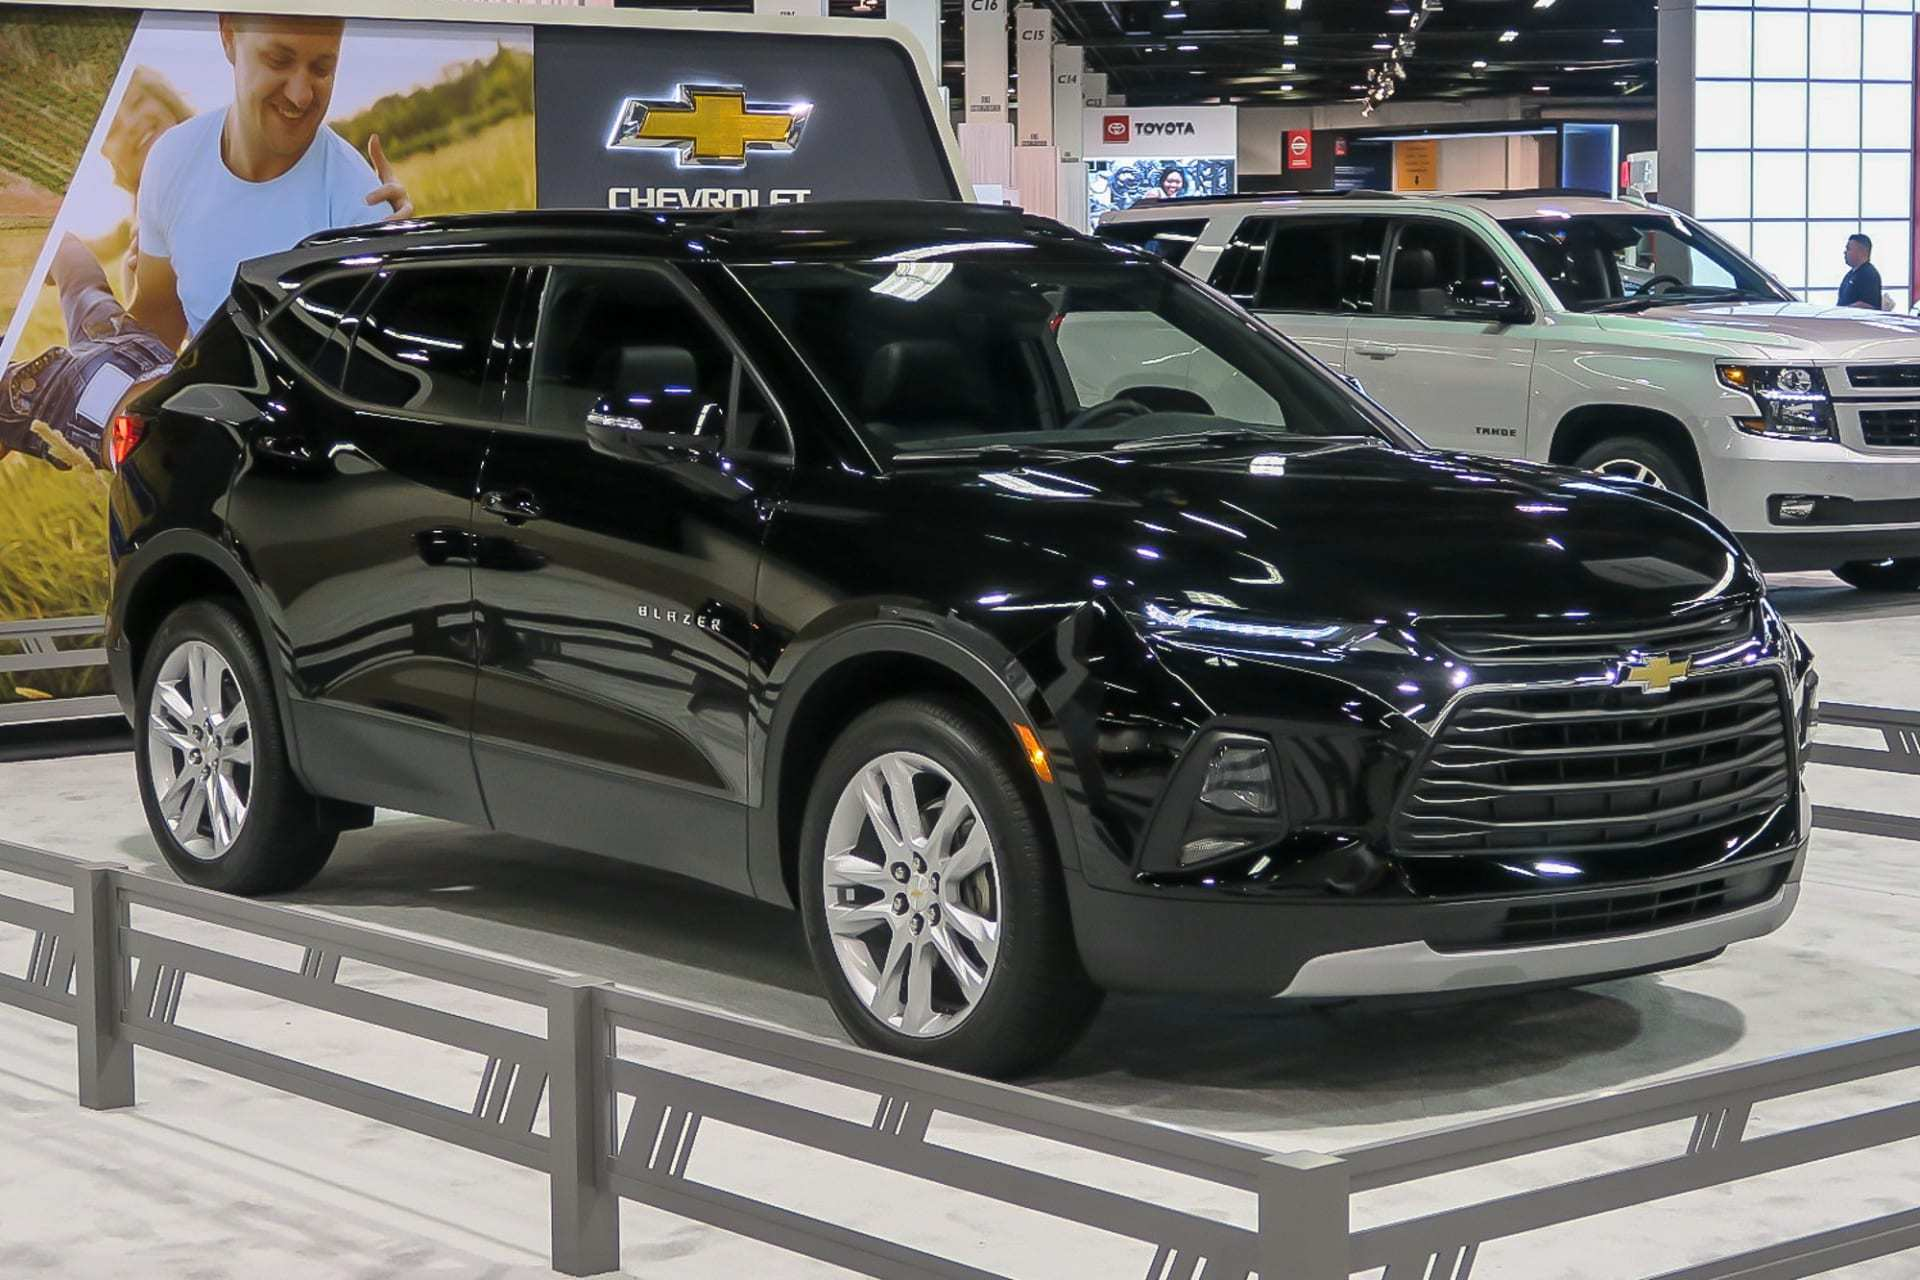 91 All New 2019 Chevy Trailblazer Concept And Review